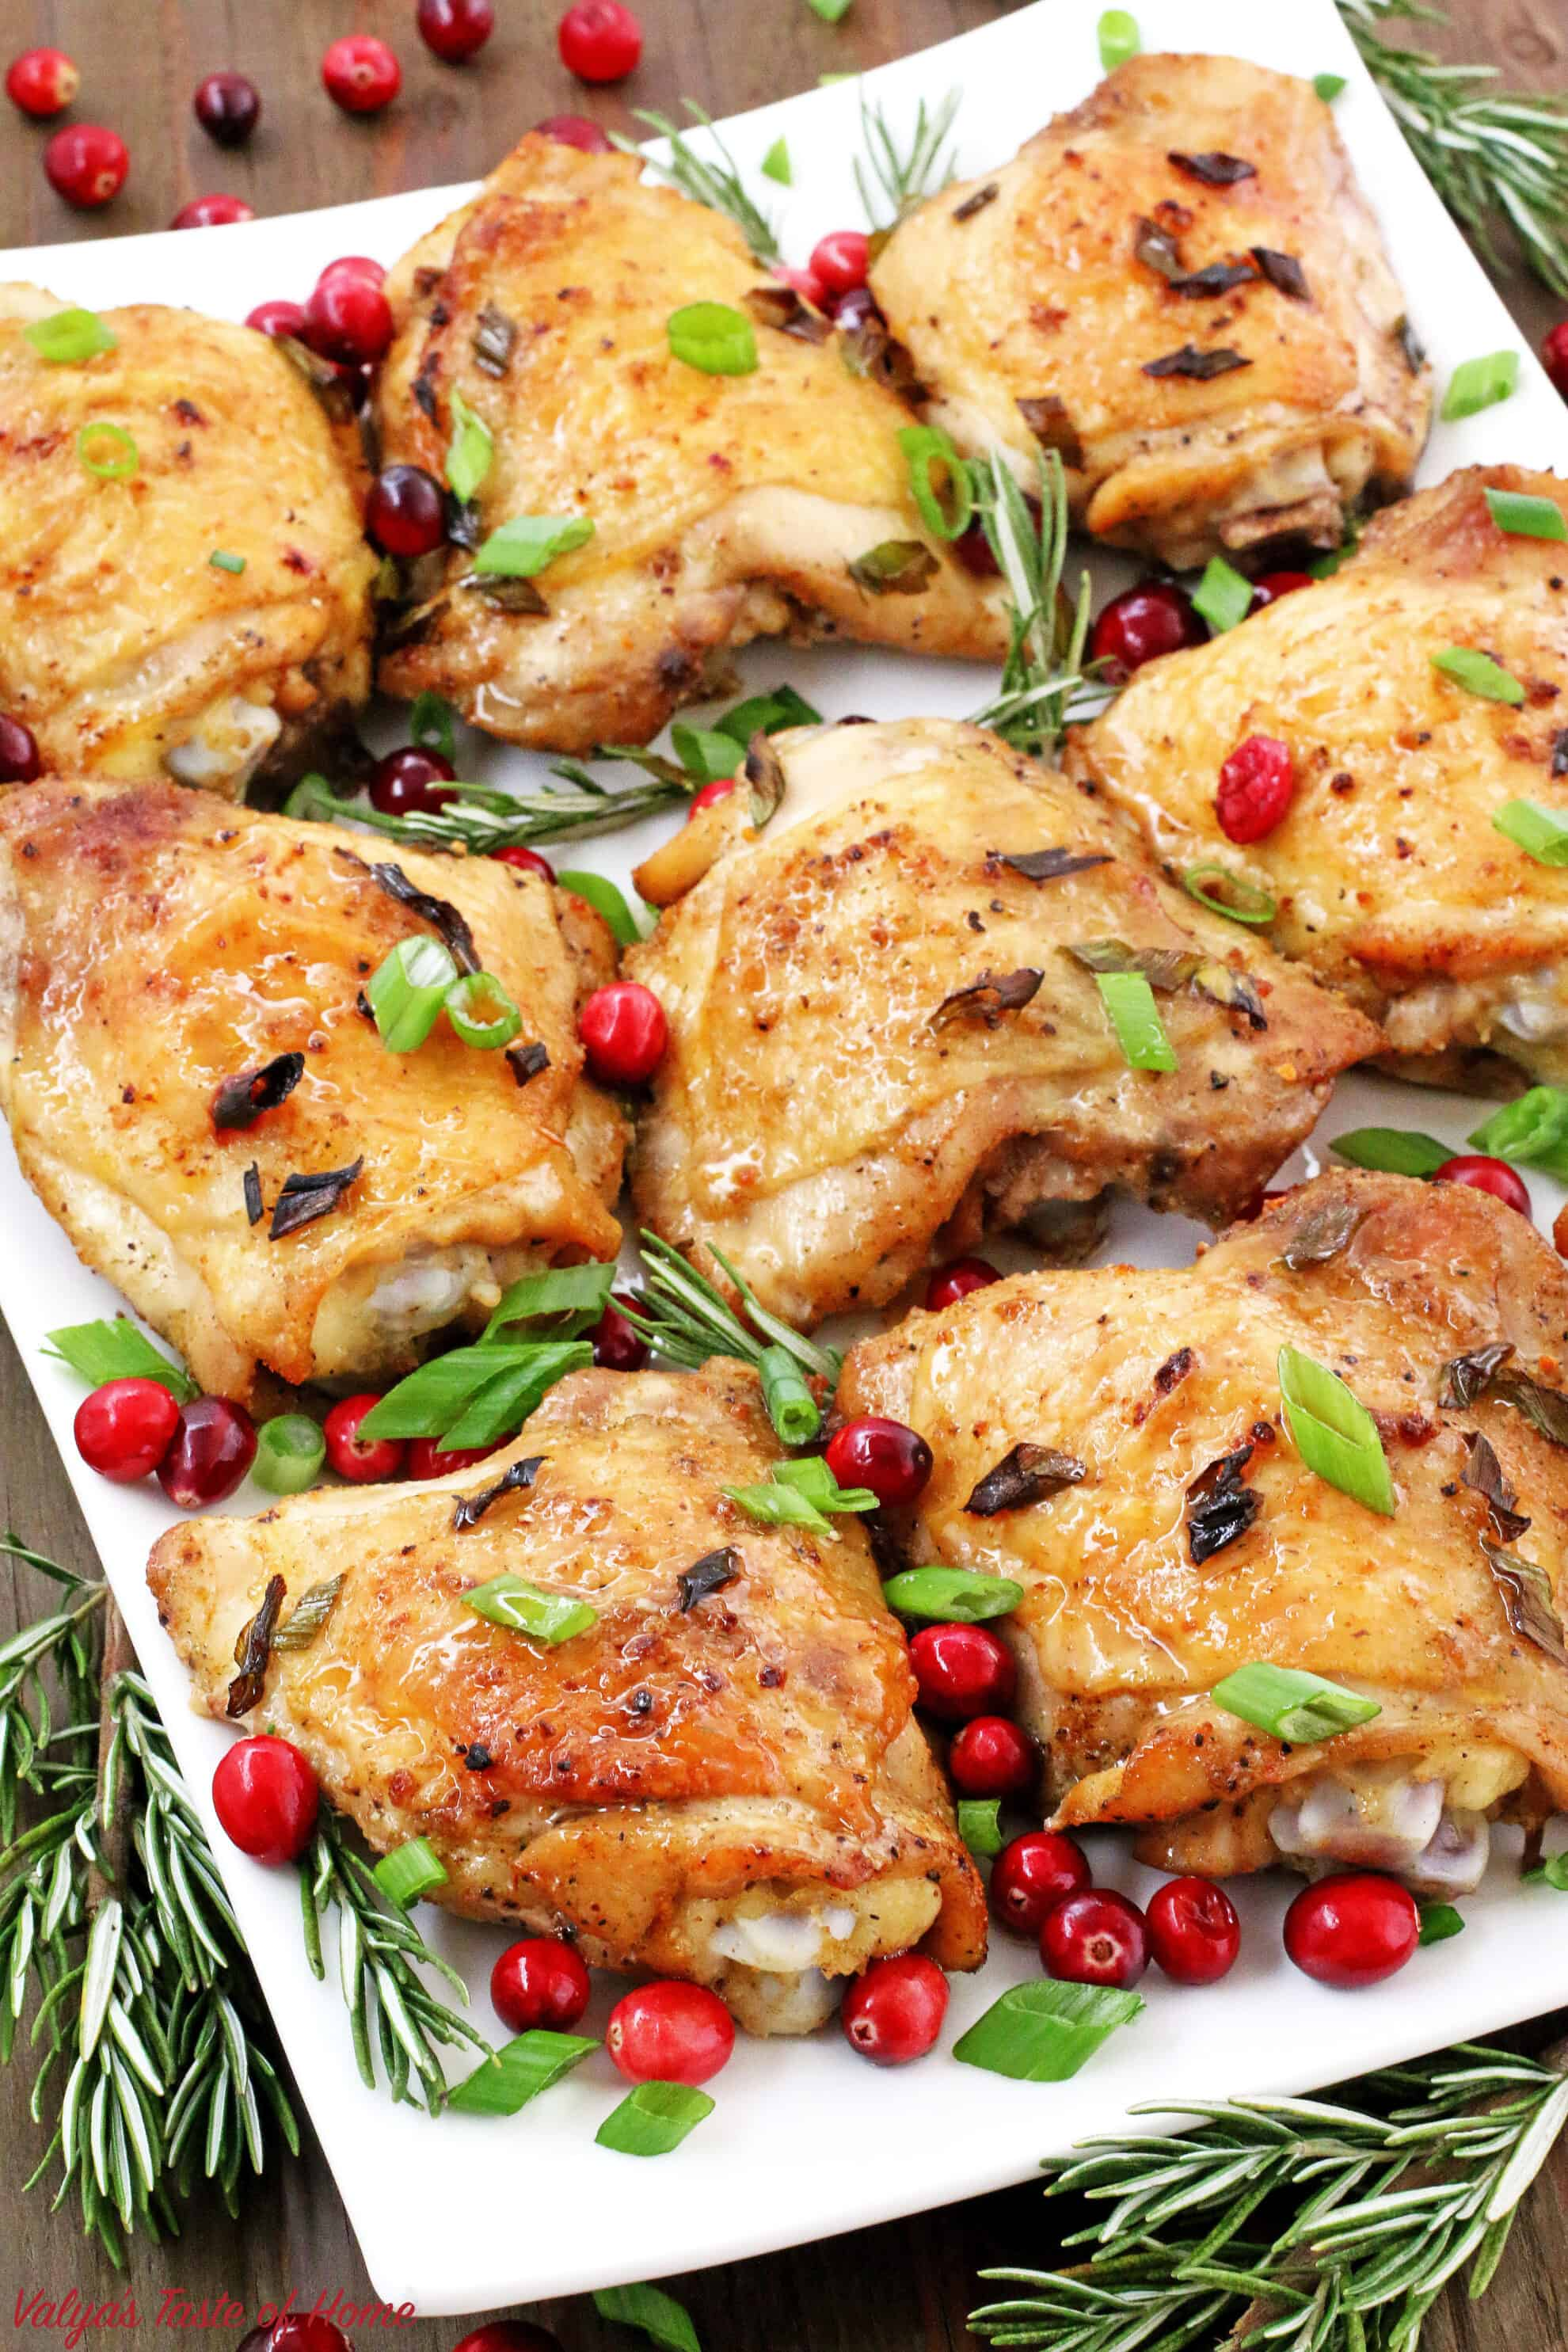 This Rosemary Cranberry Baked Chicken Thighs recipe is the perfect addition to your holiday table that satisfies that craving, as well as adding to the holiday's feel. The chicken thighs are super juicy, tender on the inside, and loaded with flavor.